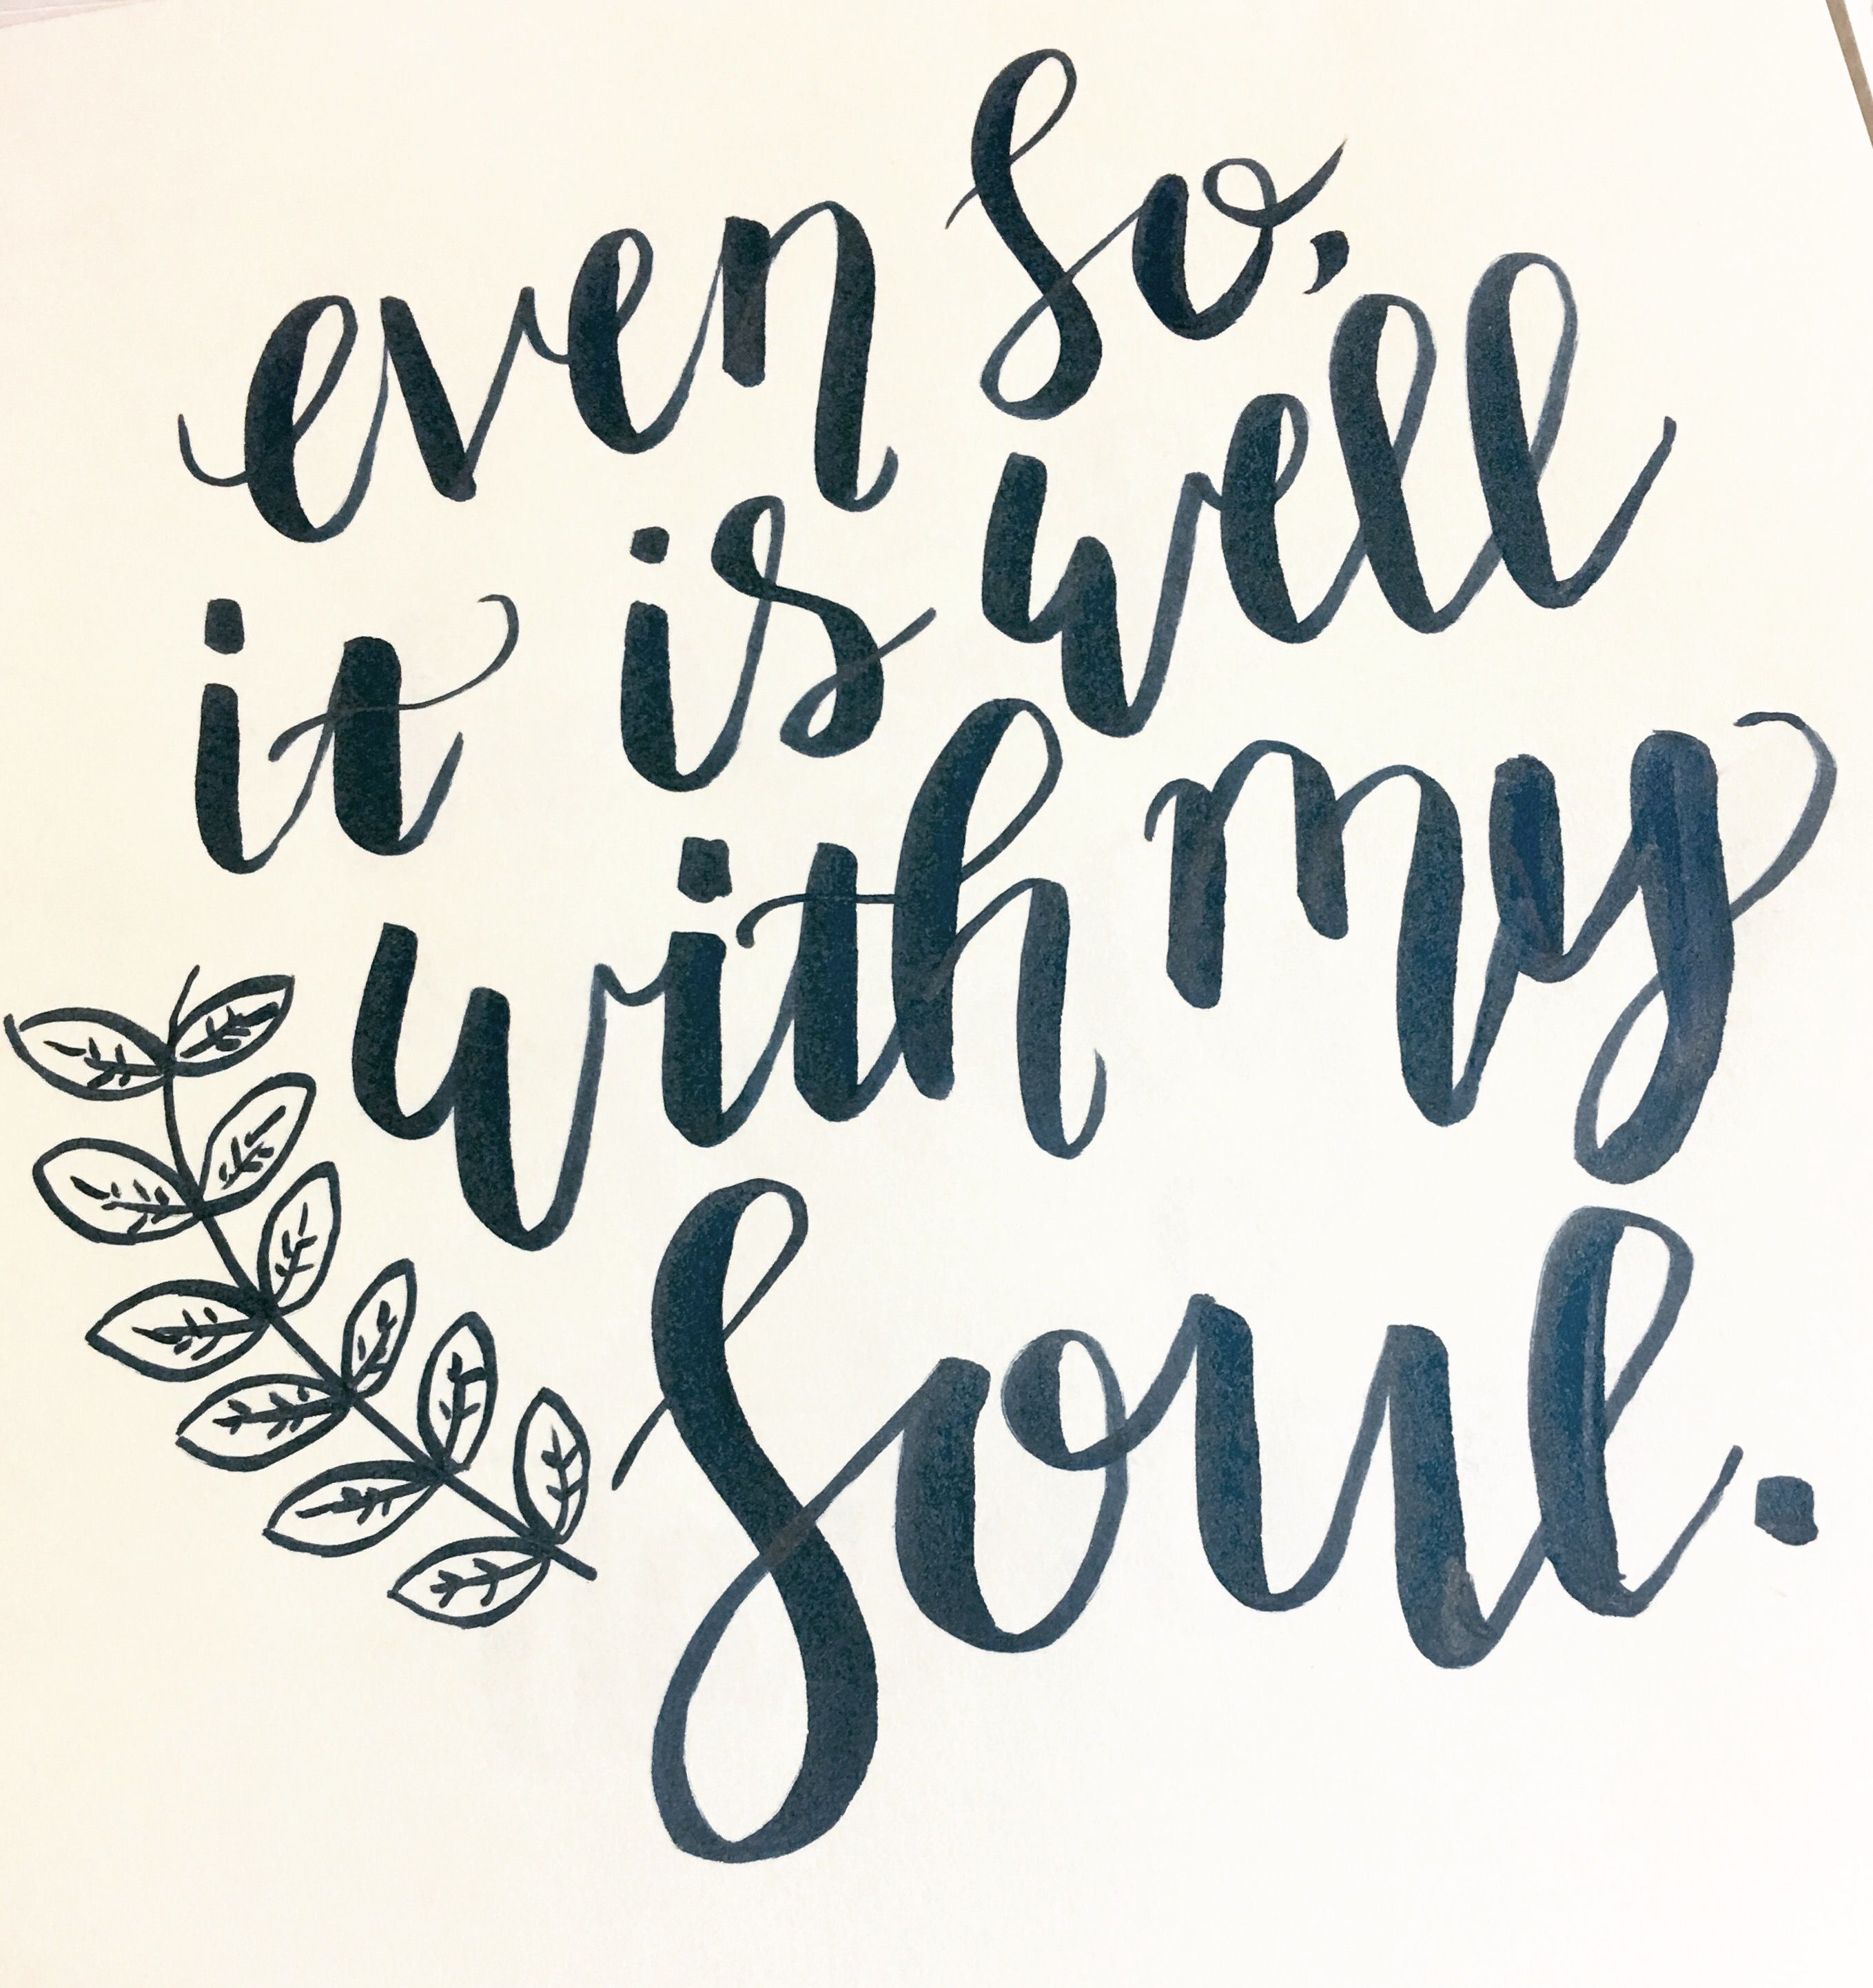 Even so it is well with my soul quotes Soul quotes